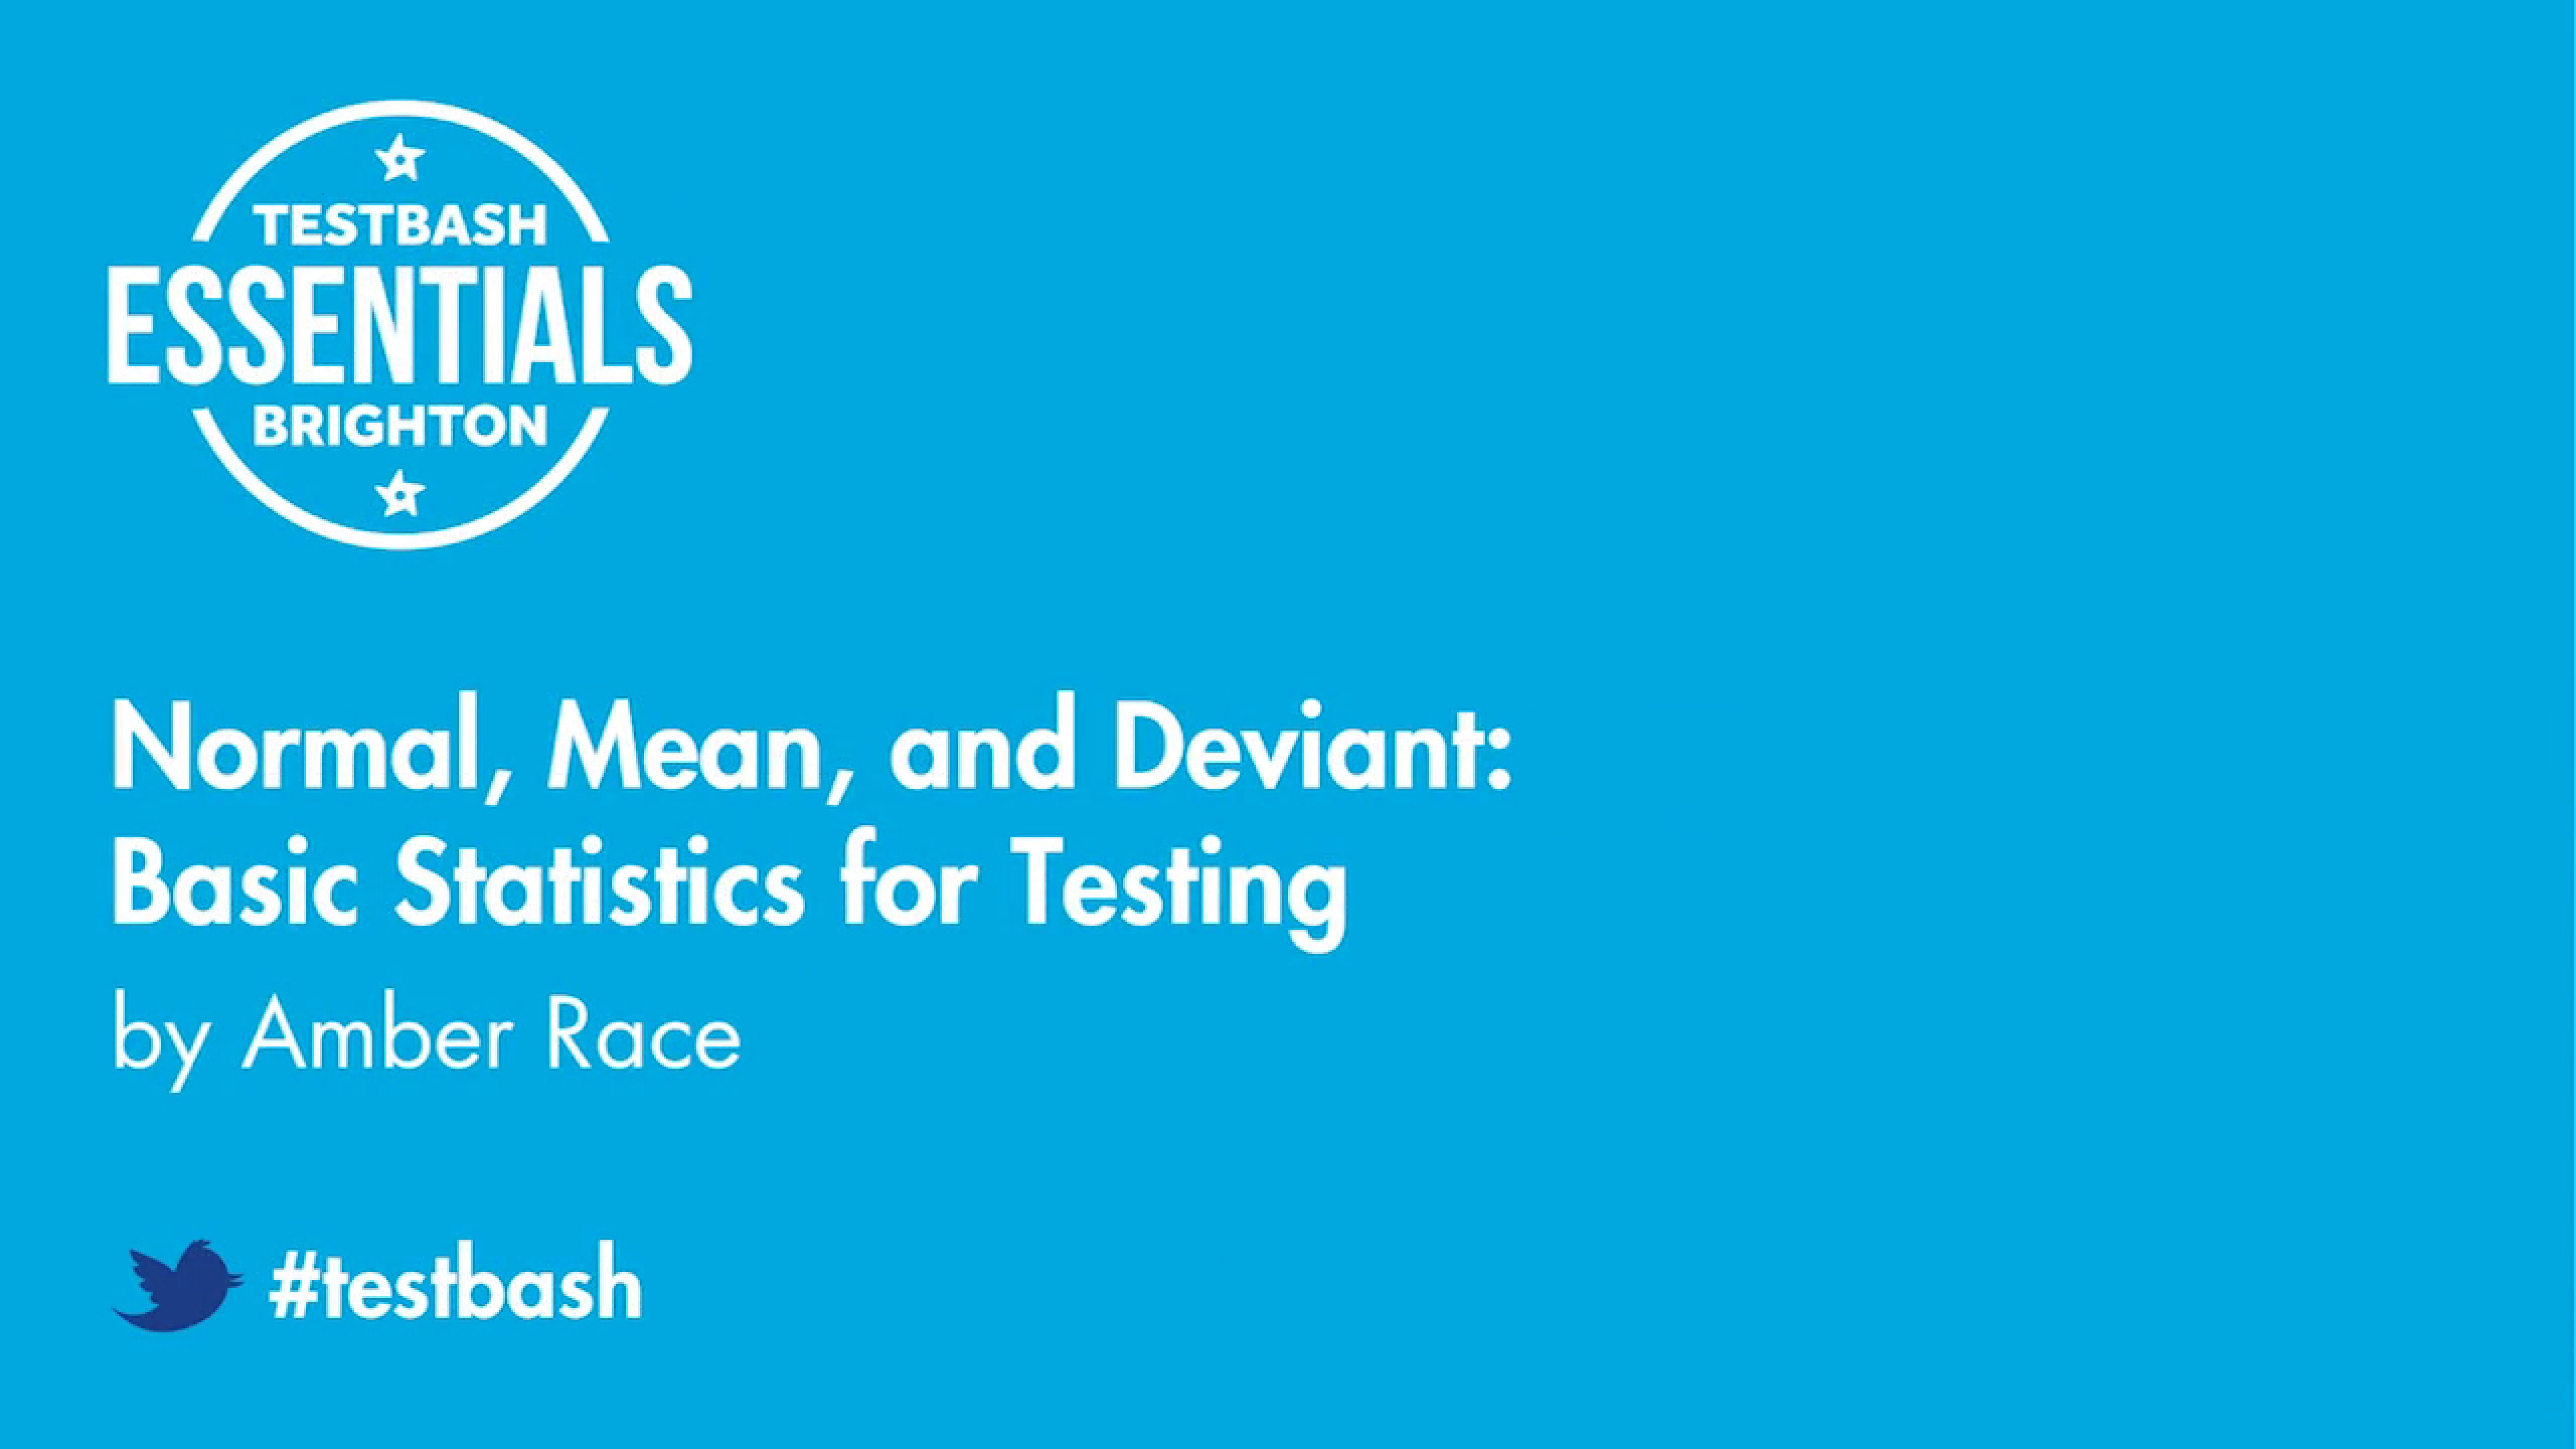 Normal, Mean, and Deviant: Basic Statistics for Testing - Amber Race